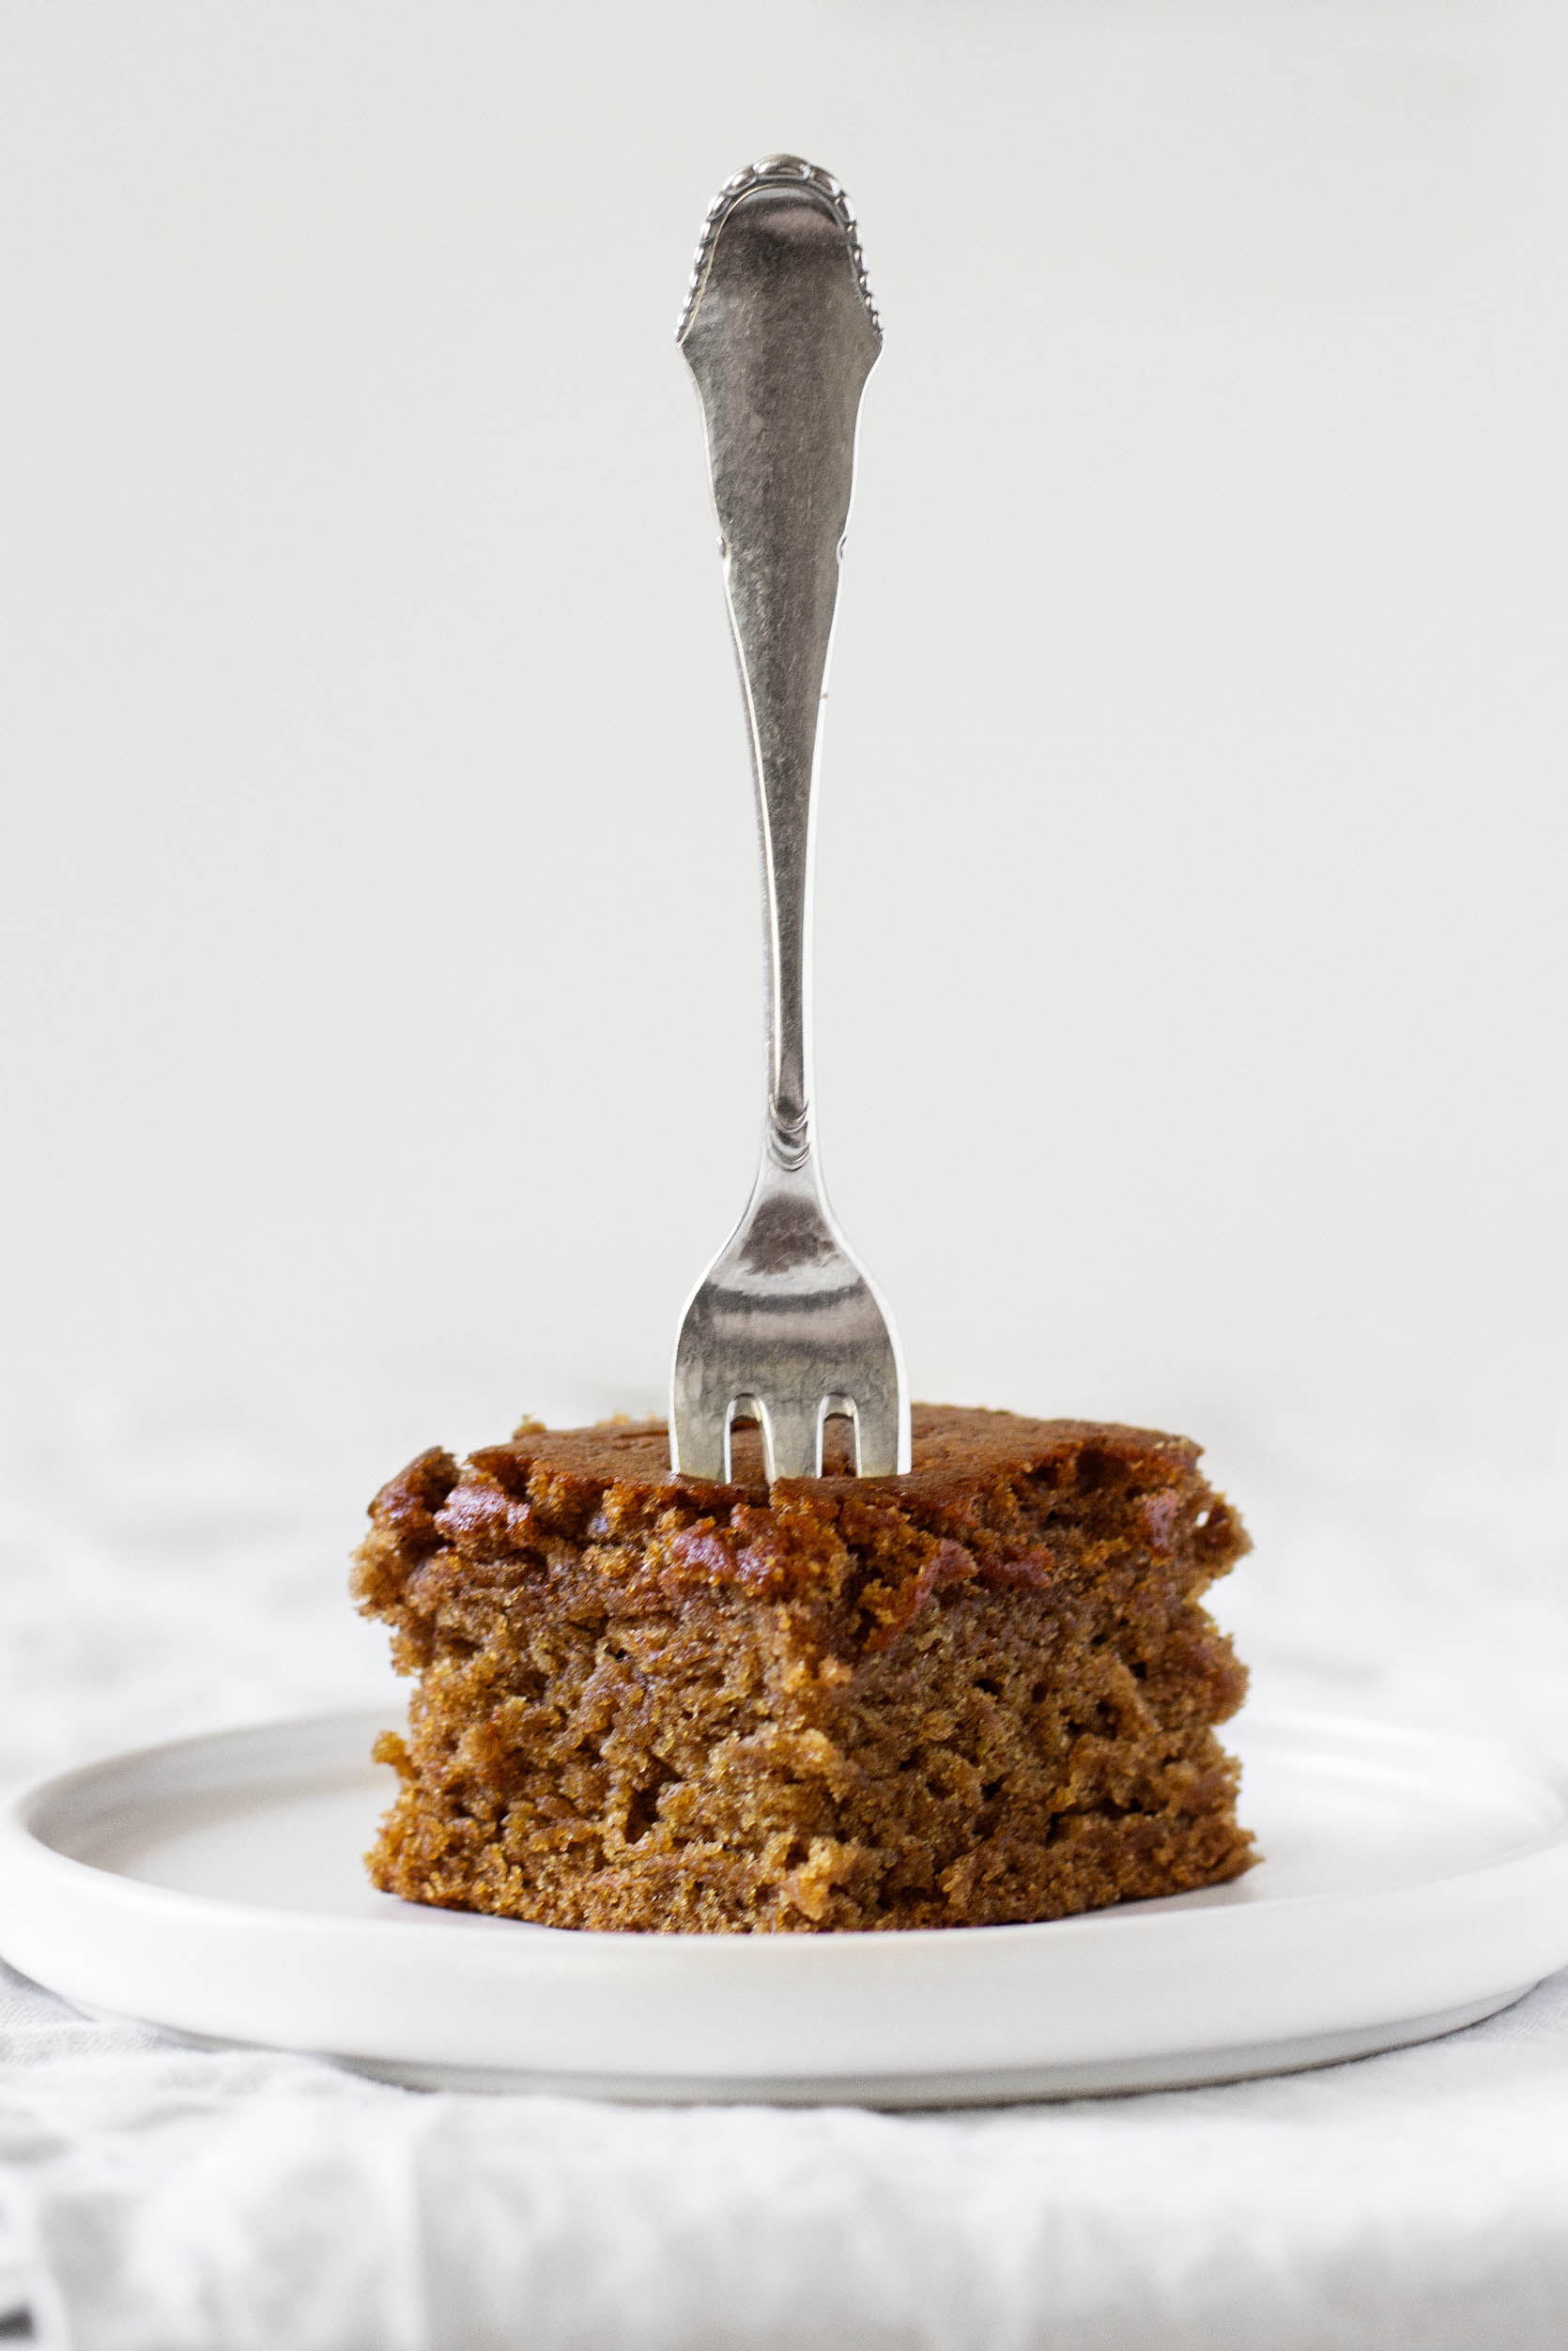 A slice of vegan gingerbread cake is pierced with a fork, ready to be eaten.